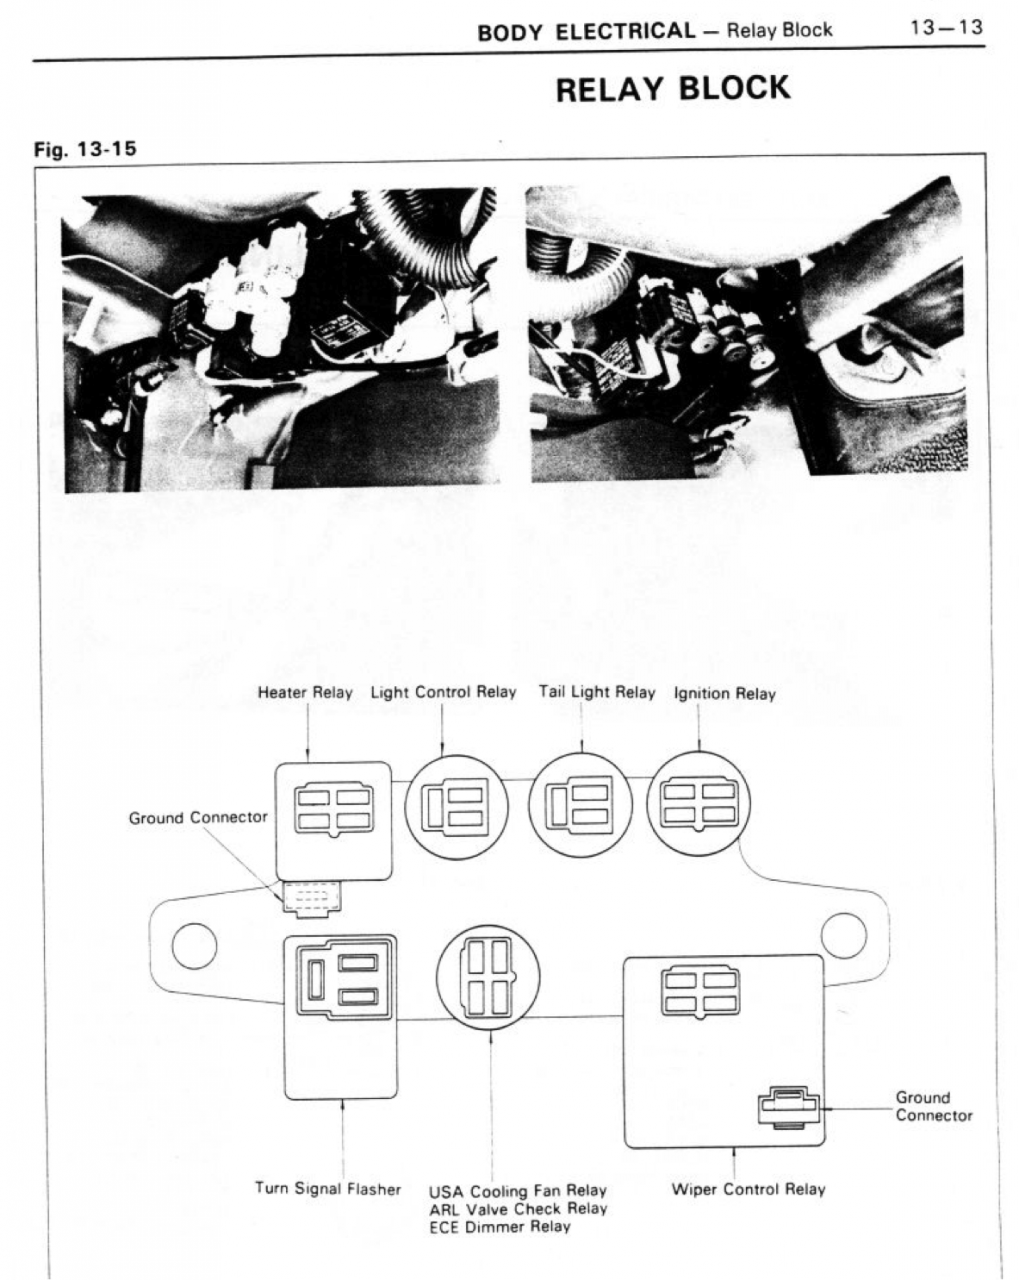 Relay Block FJ60 from Chassis-body 1980 repair manual.png